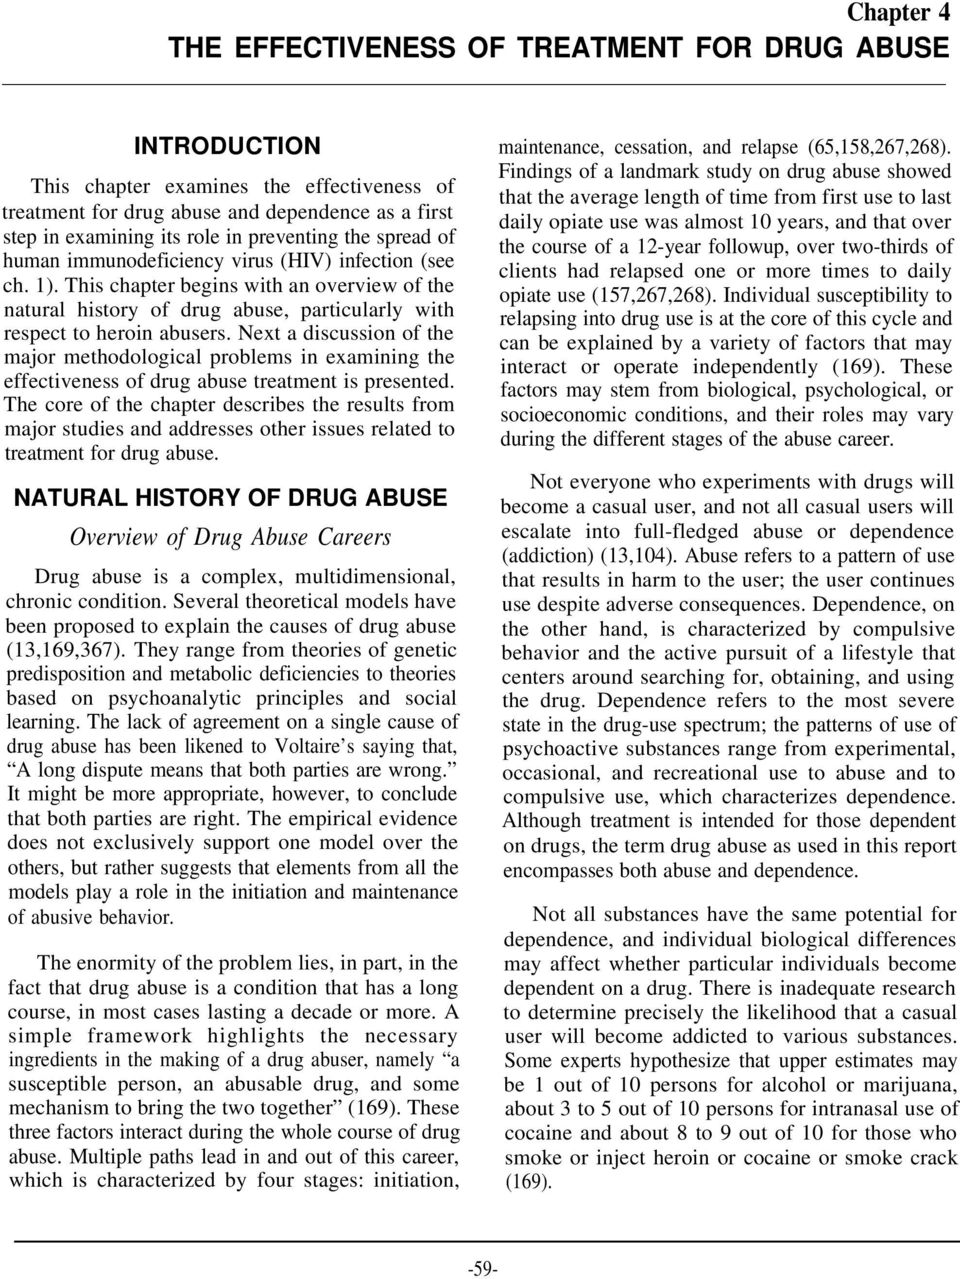 This chapter begins with an overview of the natural history of drug abuse, particularly with respect to heroin abusers.